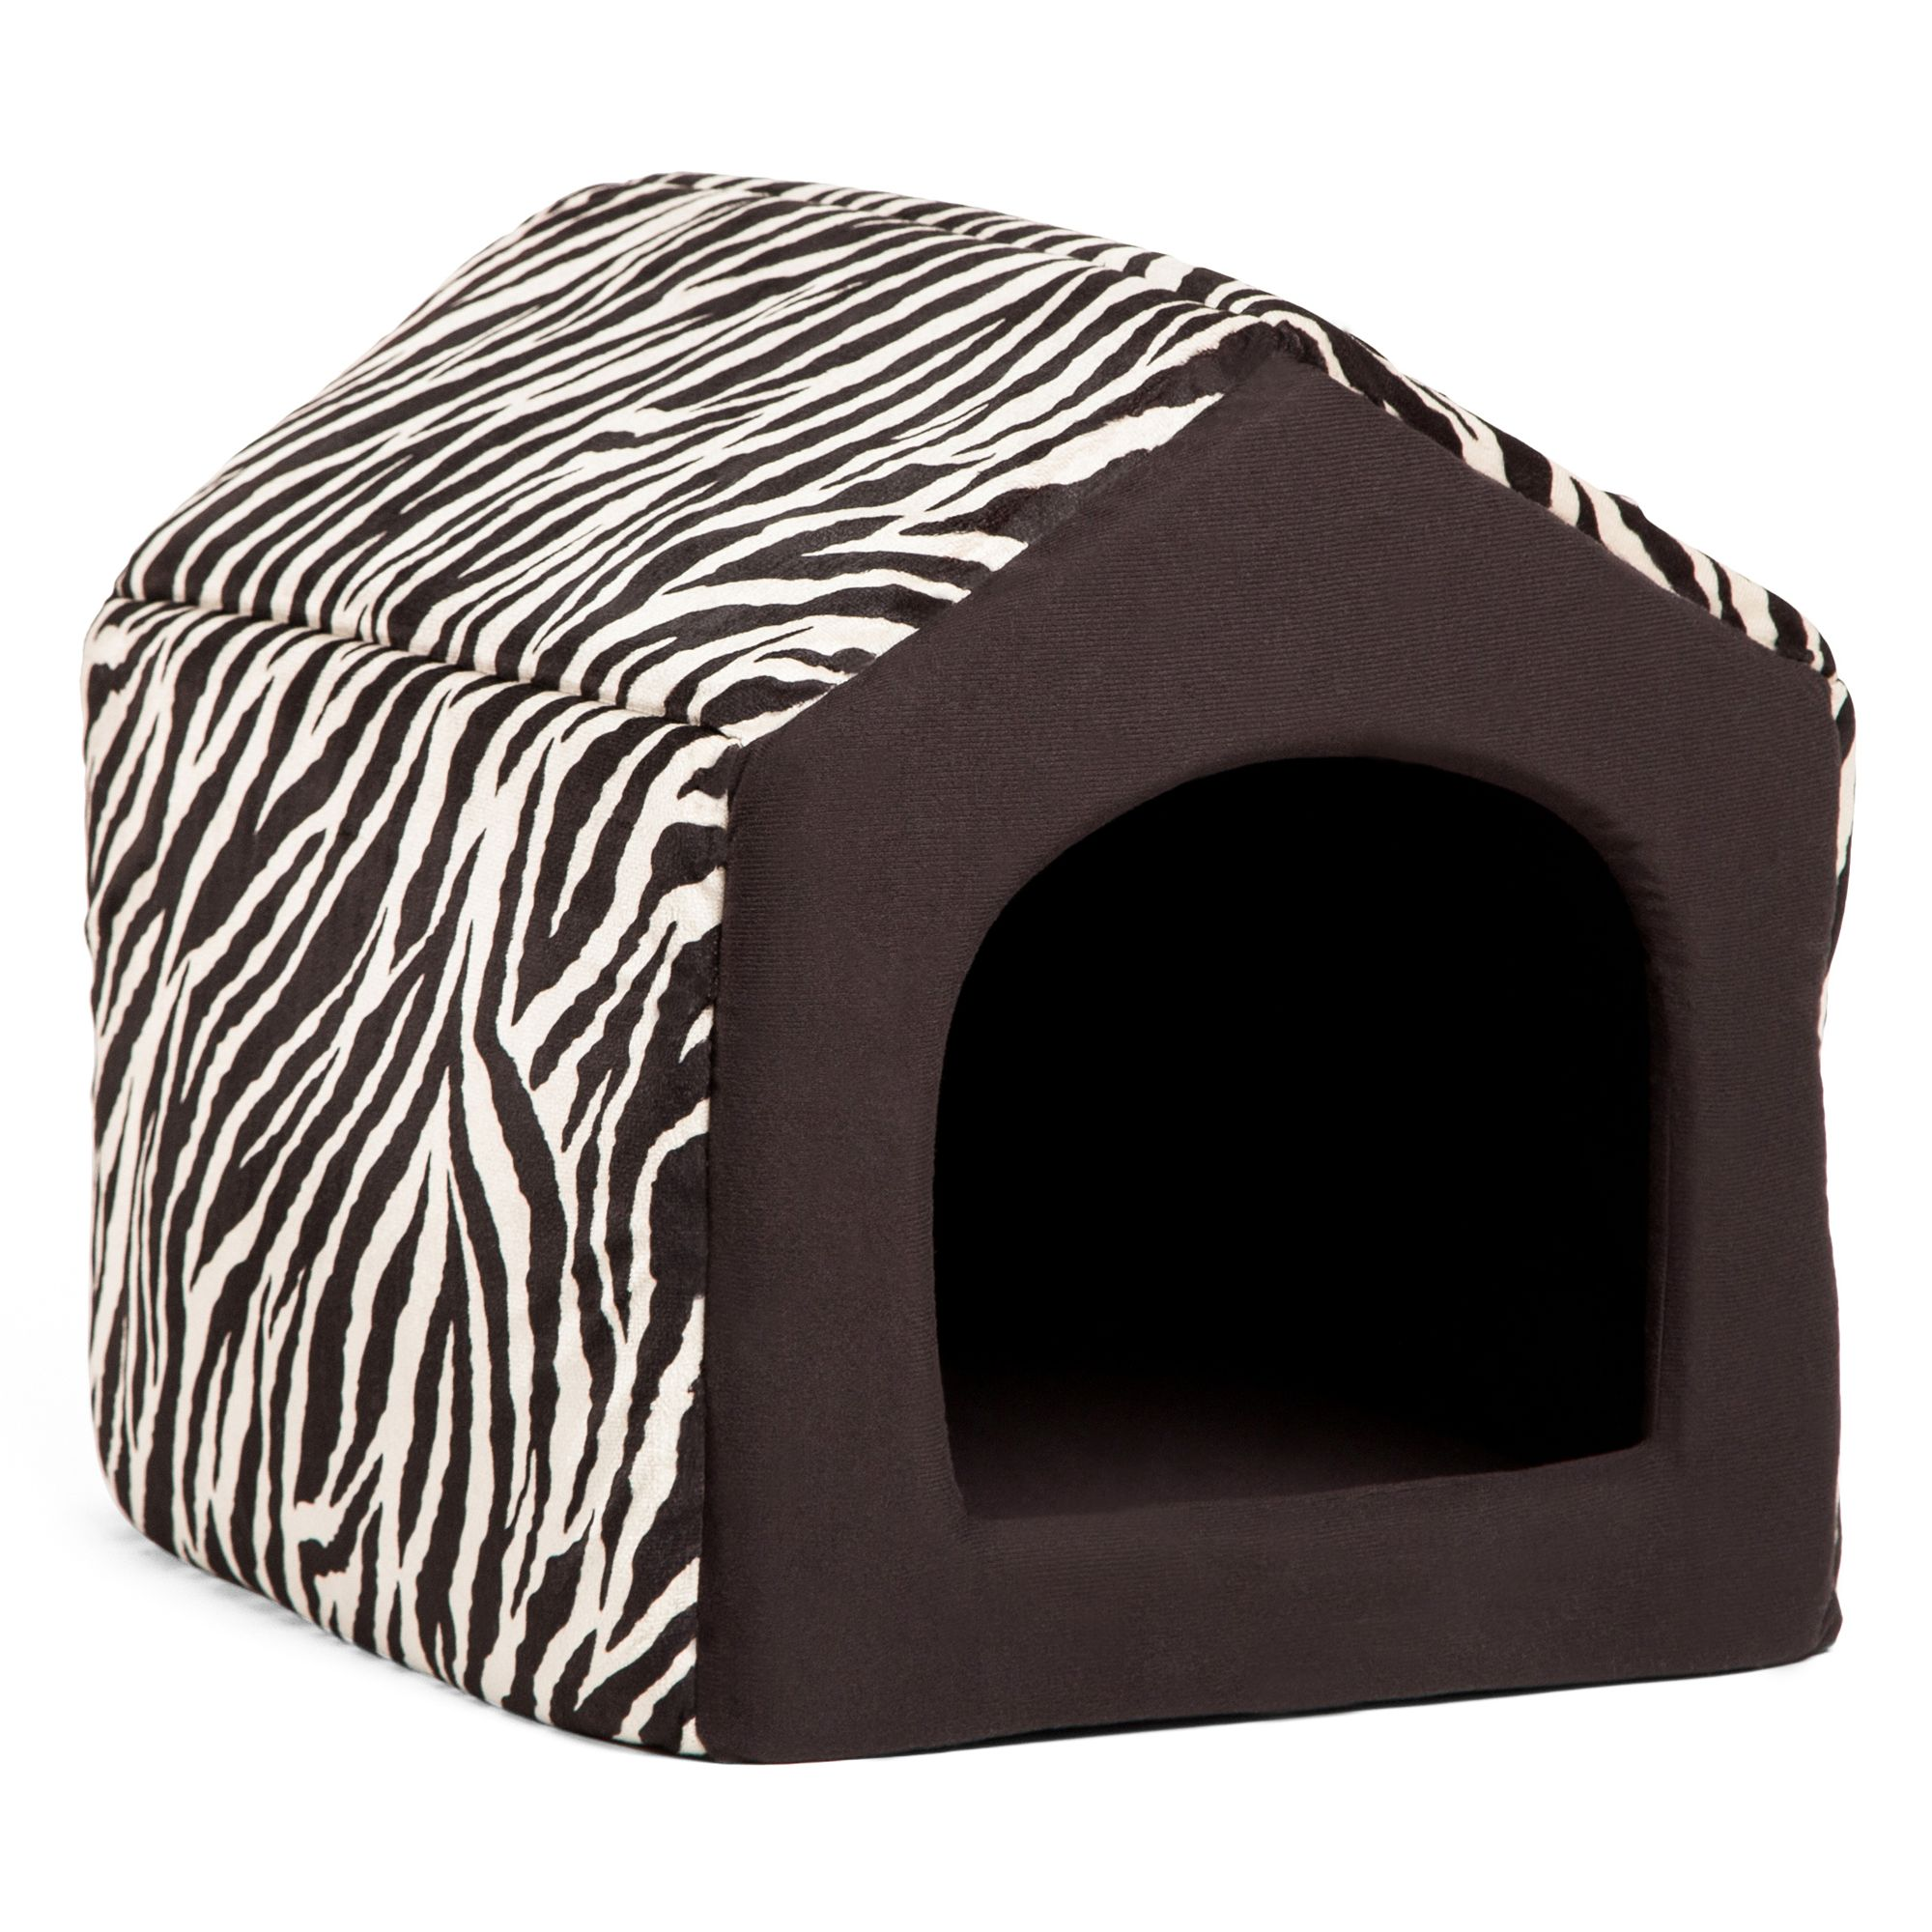 Best Friends By Sheri Convertible House Animal Print Pet Bed Size 16l X 15w X 14h Zebra